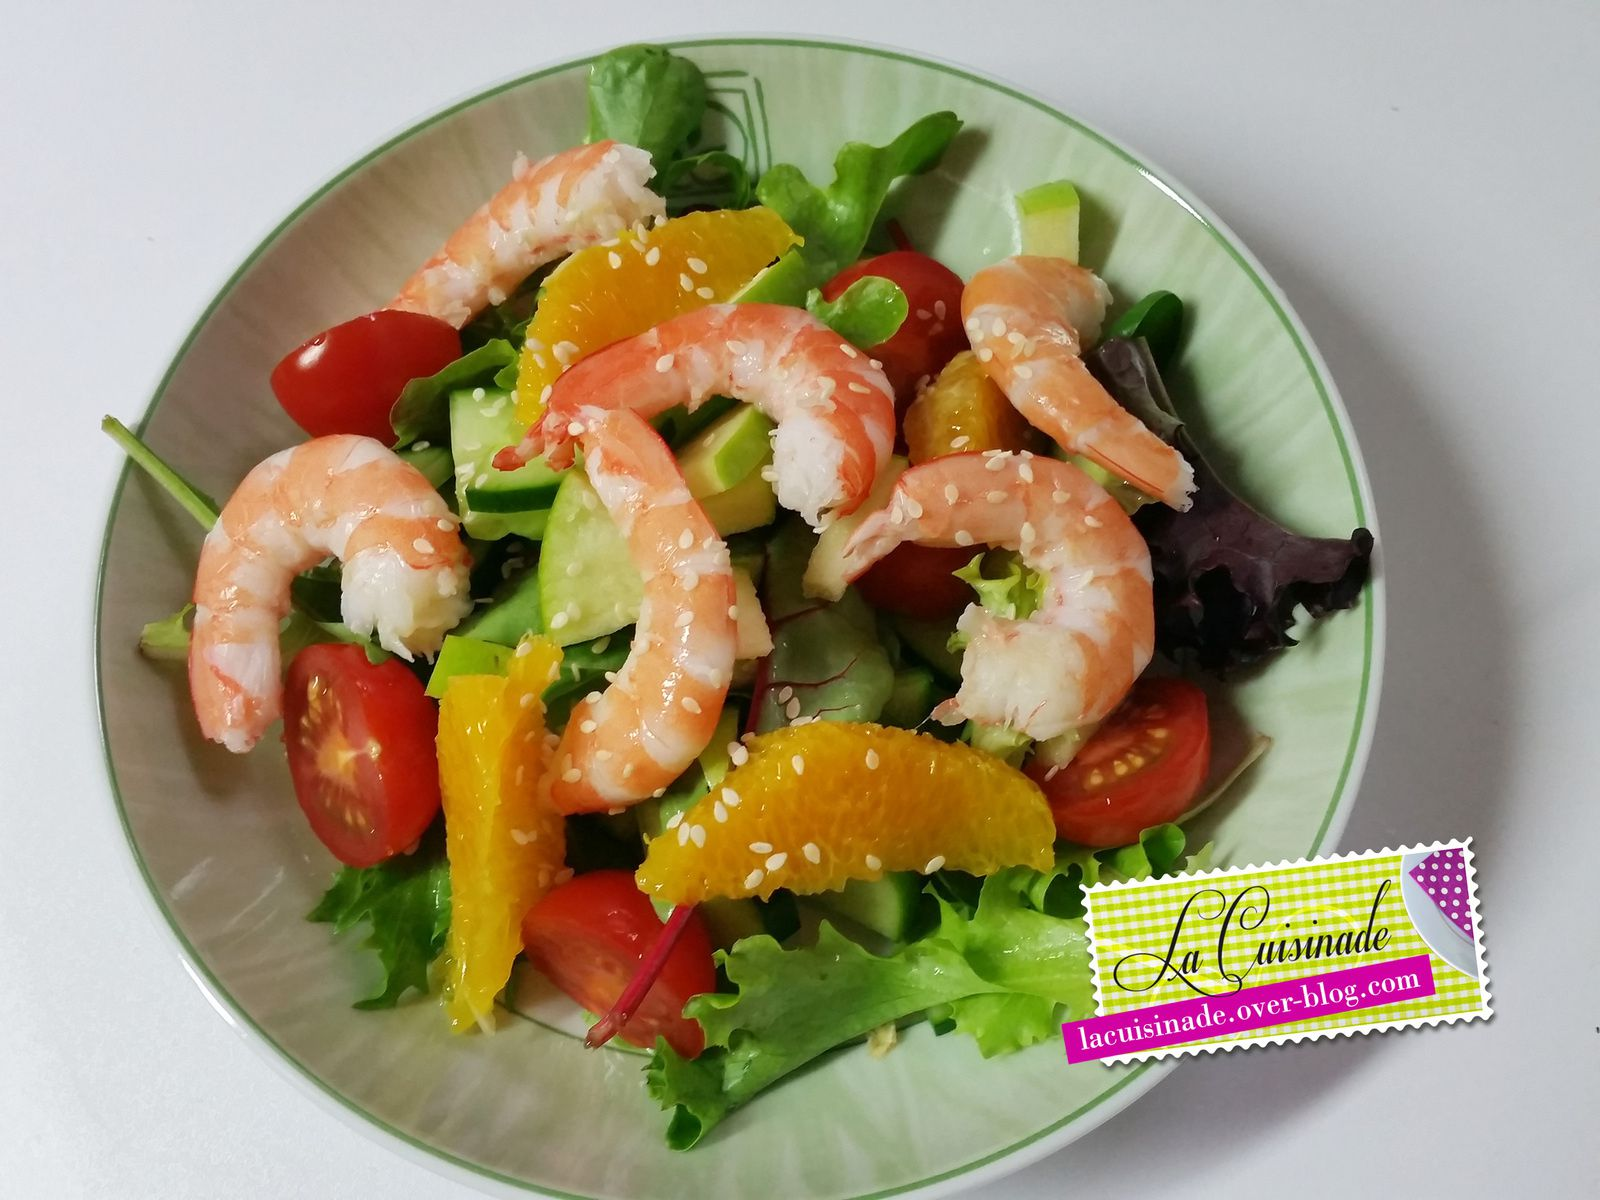 salade de crevettes aux agrumes la cuisinade. Black Bedroom Furniture Sets. Home Design Ideas